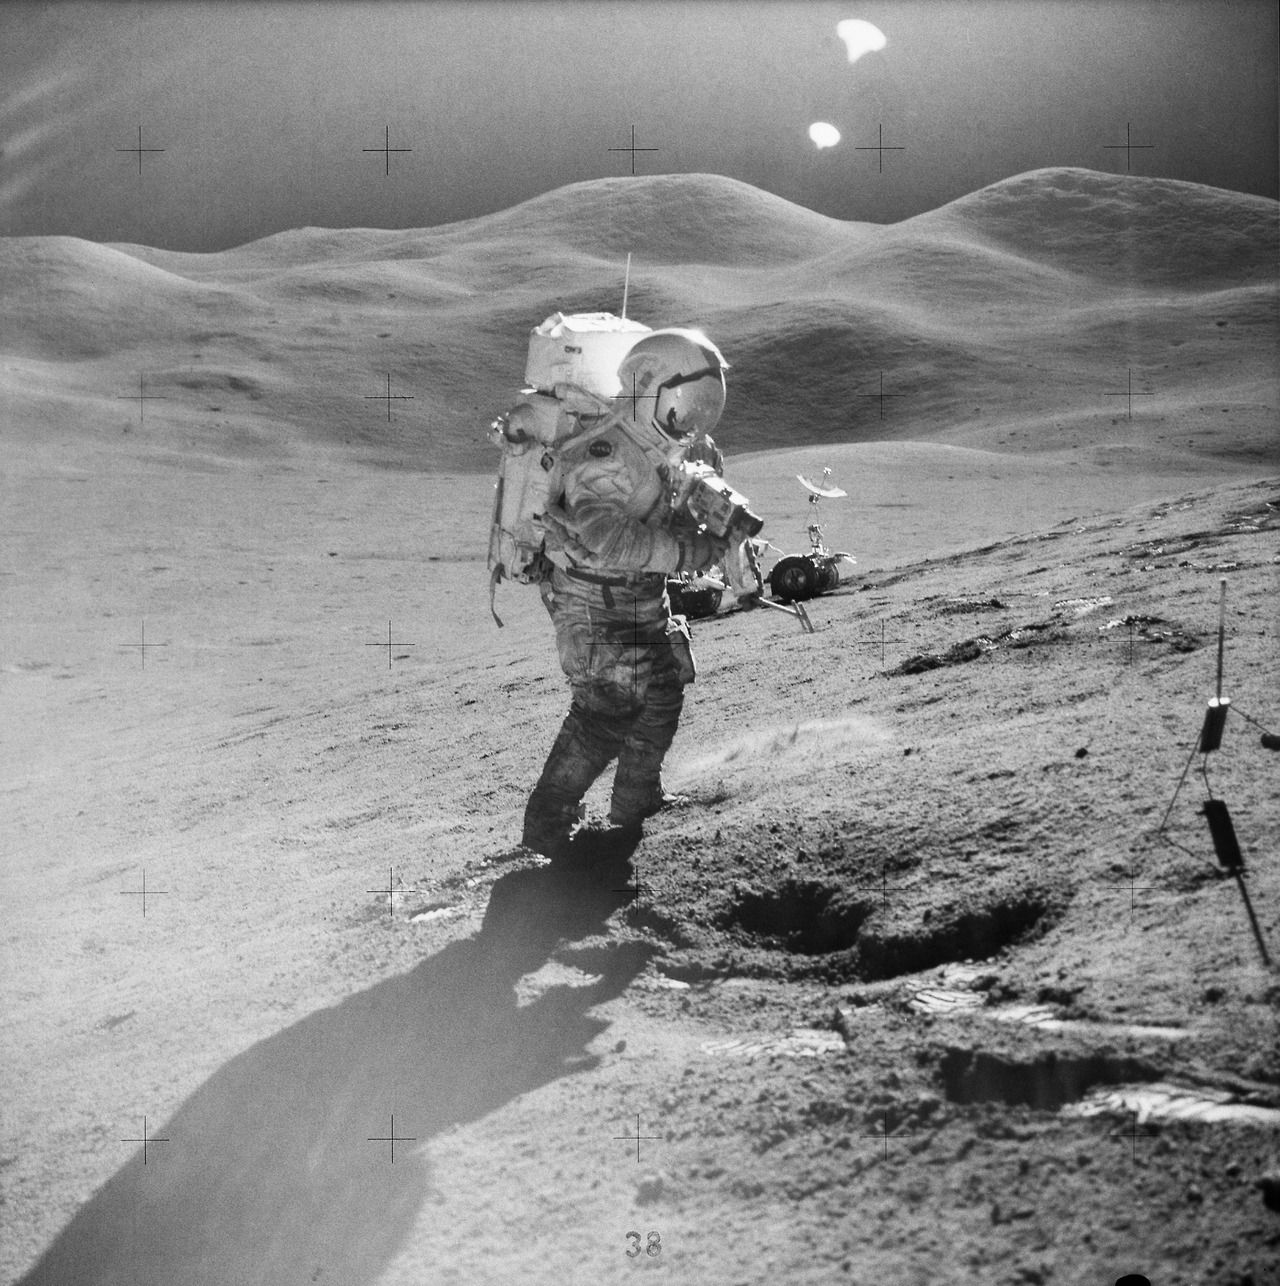 || Astronaut David R. Scott, commander, standing on the slope of Hadley Delta, uses a 70mm camera during Apollo 15 extravehicular activity (EVA) on the lunar surface. He is 10.5 miles (or 17.5 kilometers) from the base of the Apennine Mountains seen in the background.